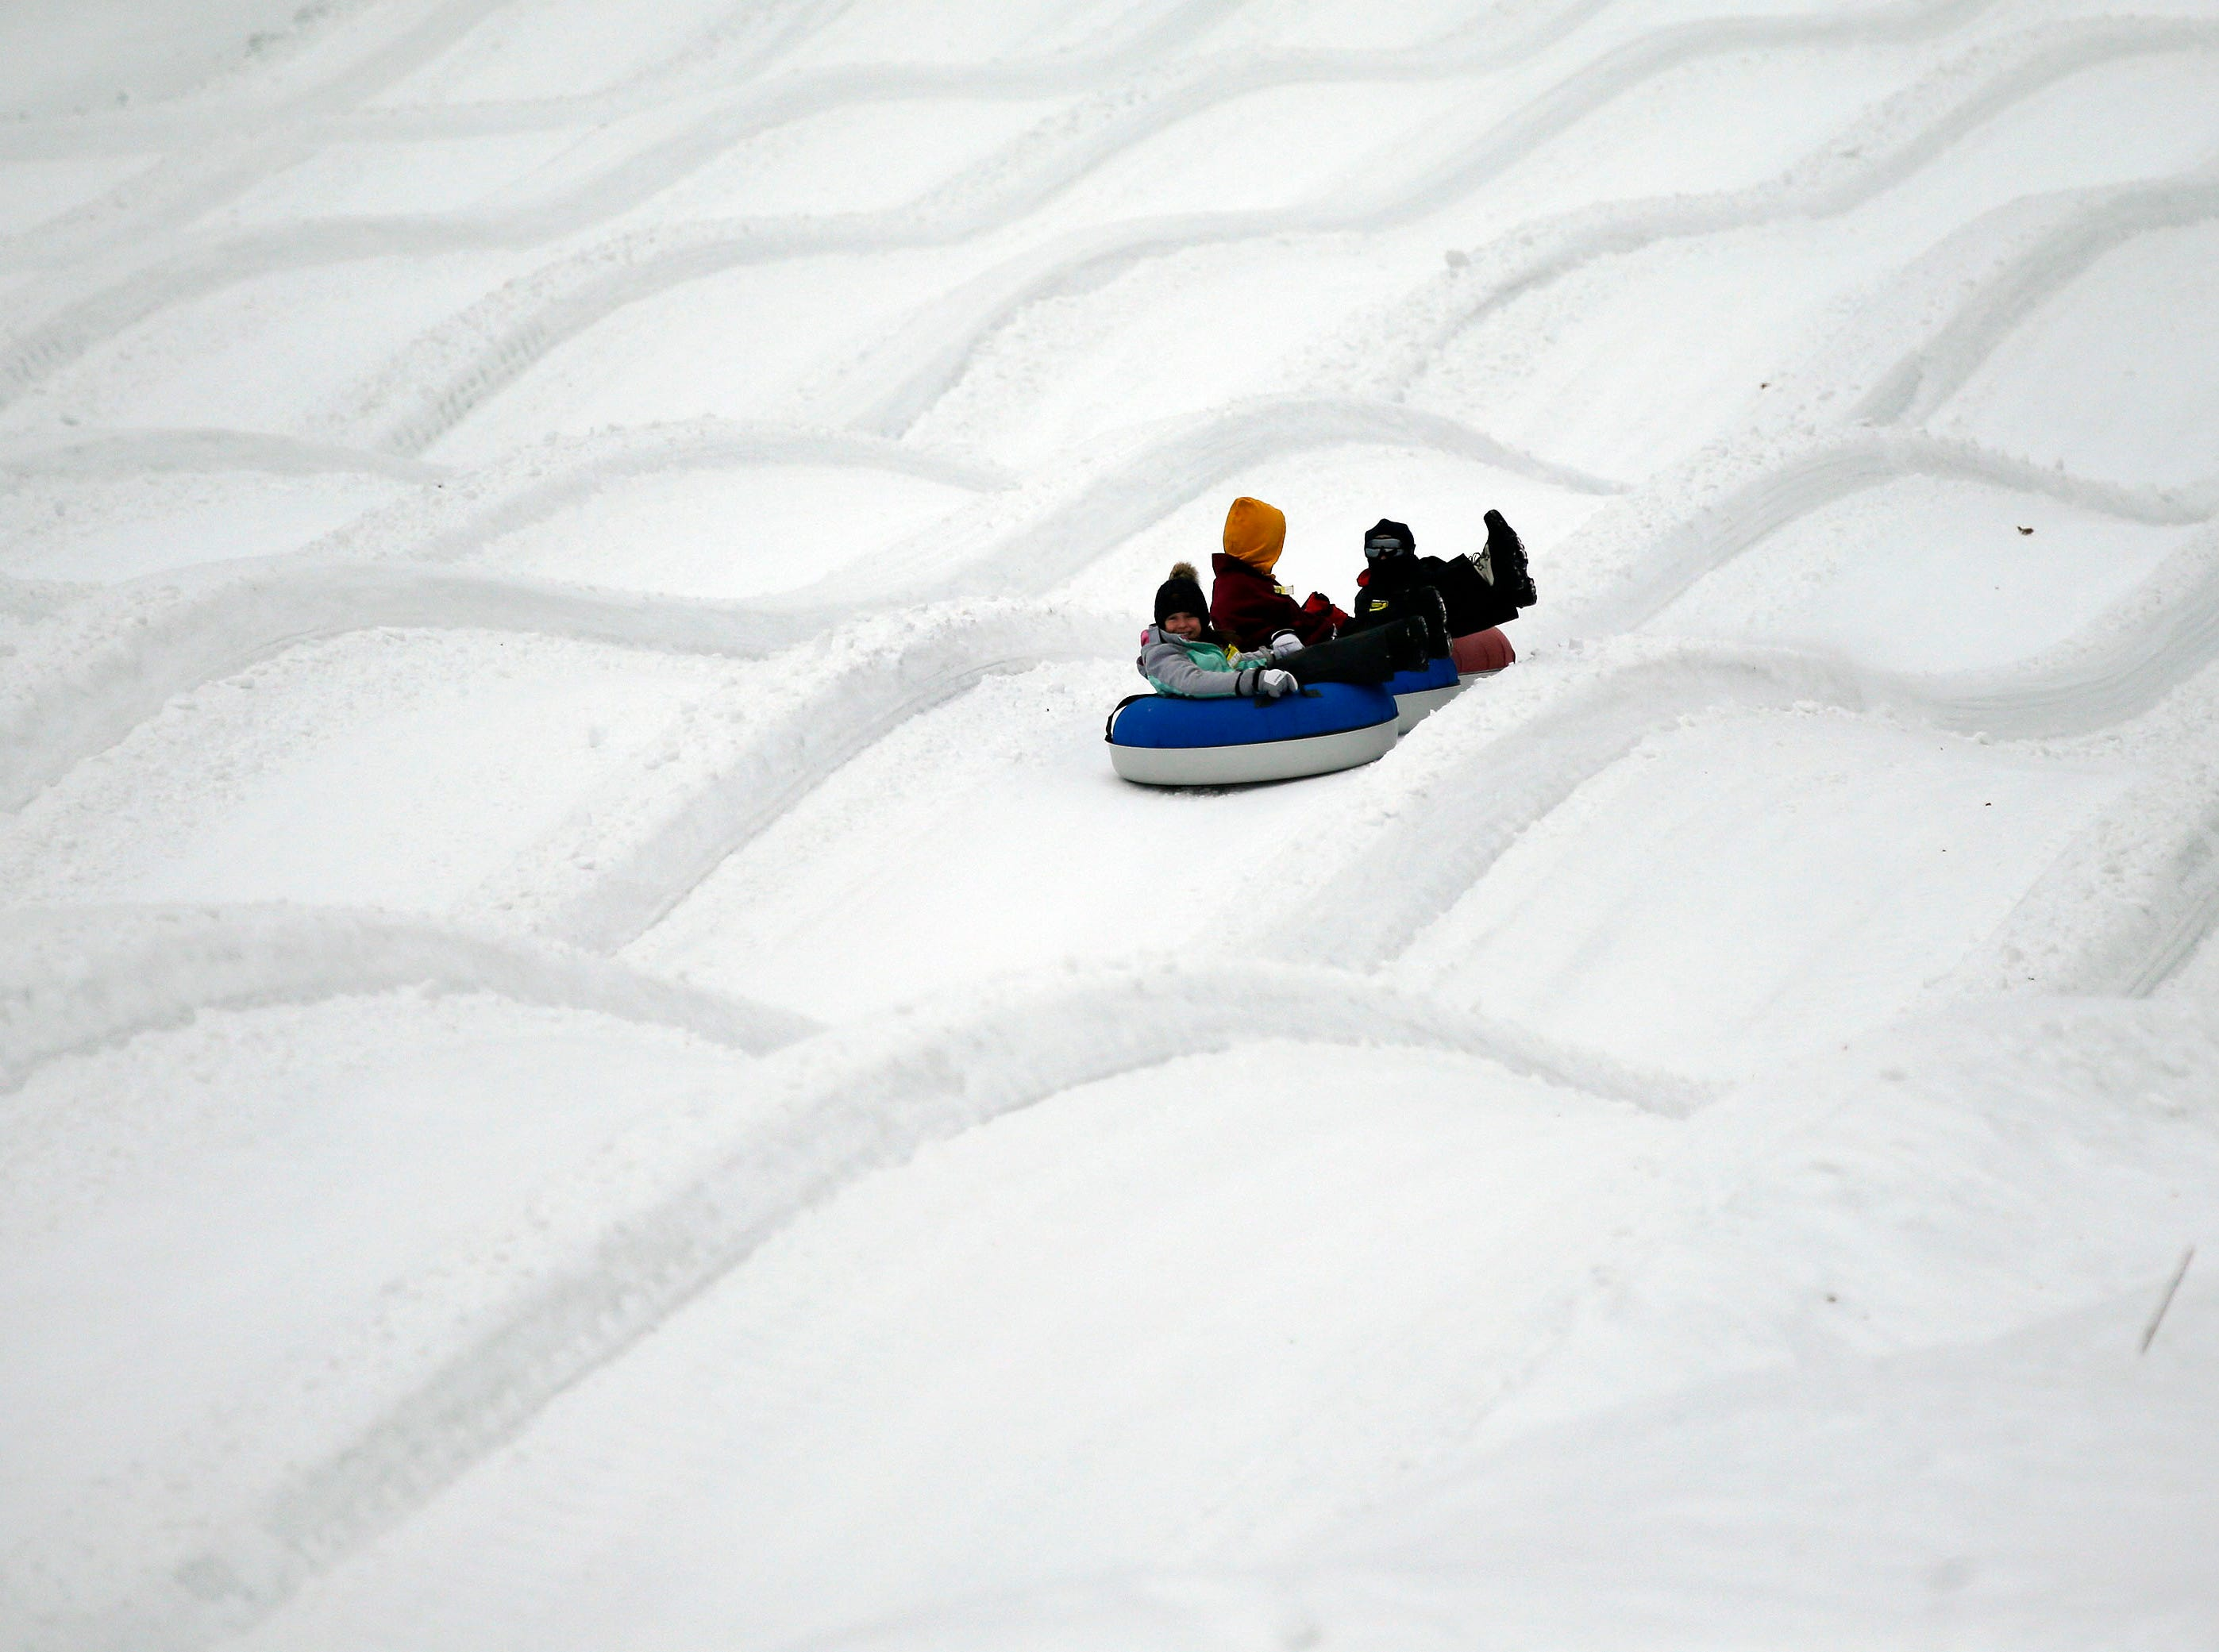 Jennifer Kohnke of Montello and her children Saydee and Klay make a run as a mild winter day brings tubing fans to Nordic Mountain Sunday, January 13, 2019, near Wild Rose, Wis.